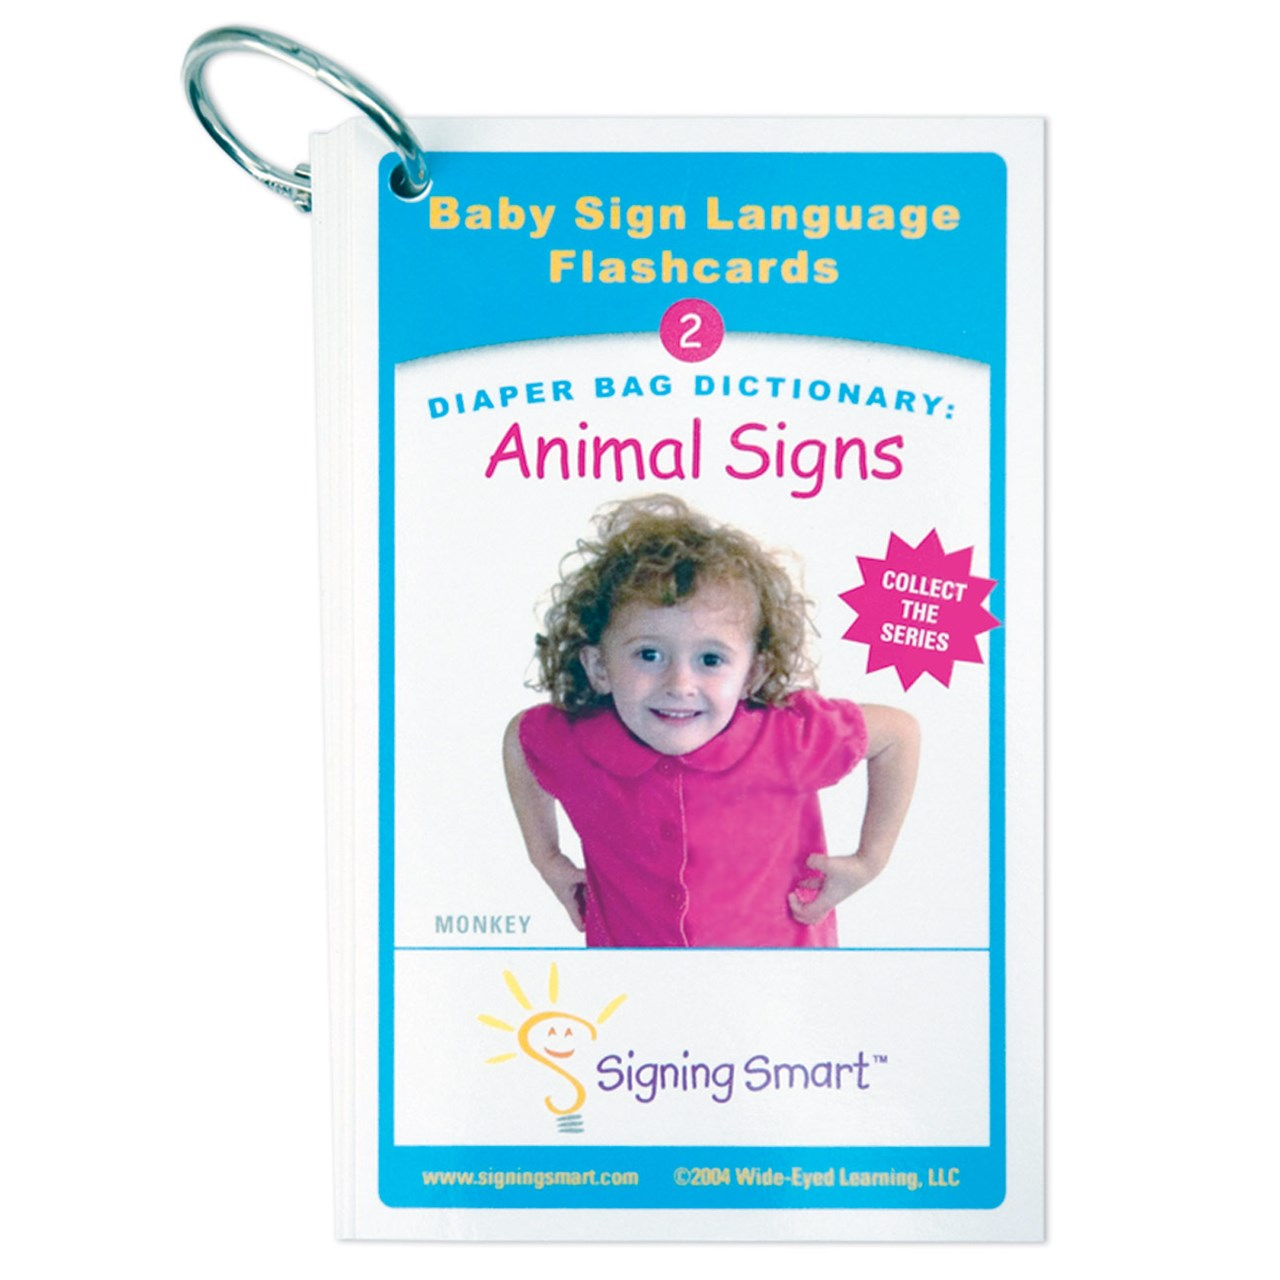 Diaper Bag Dictionary- Animal Signs Teaching Cards